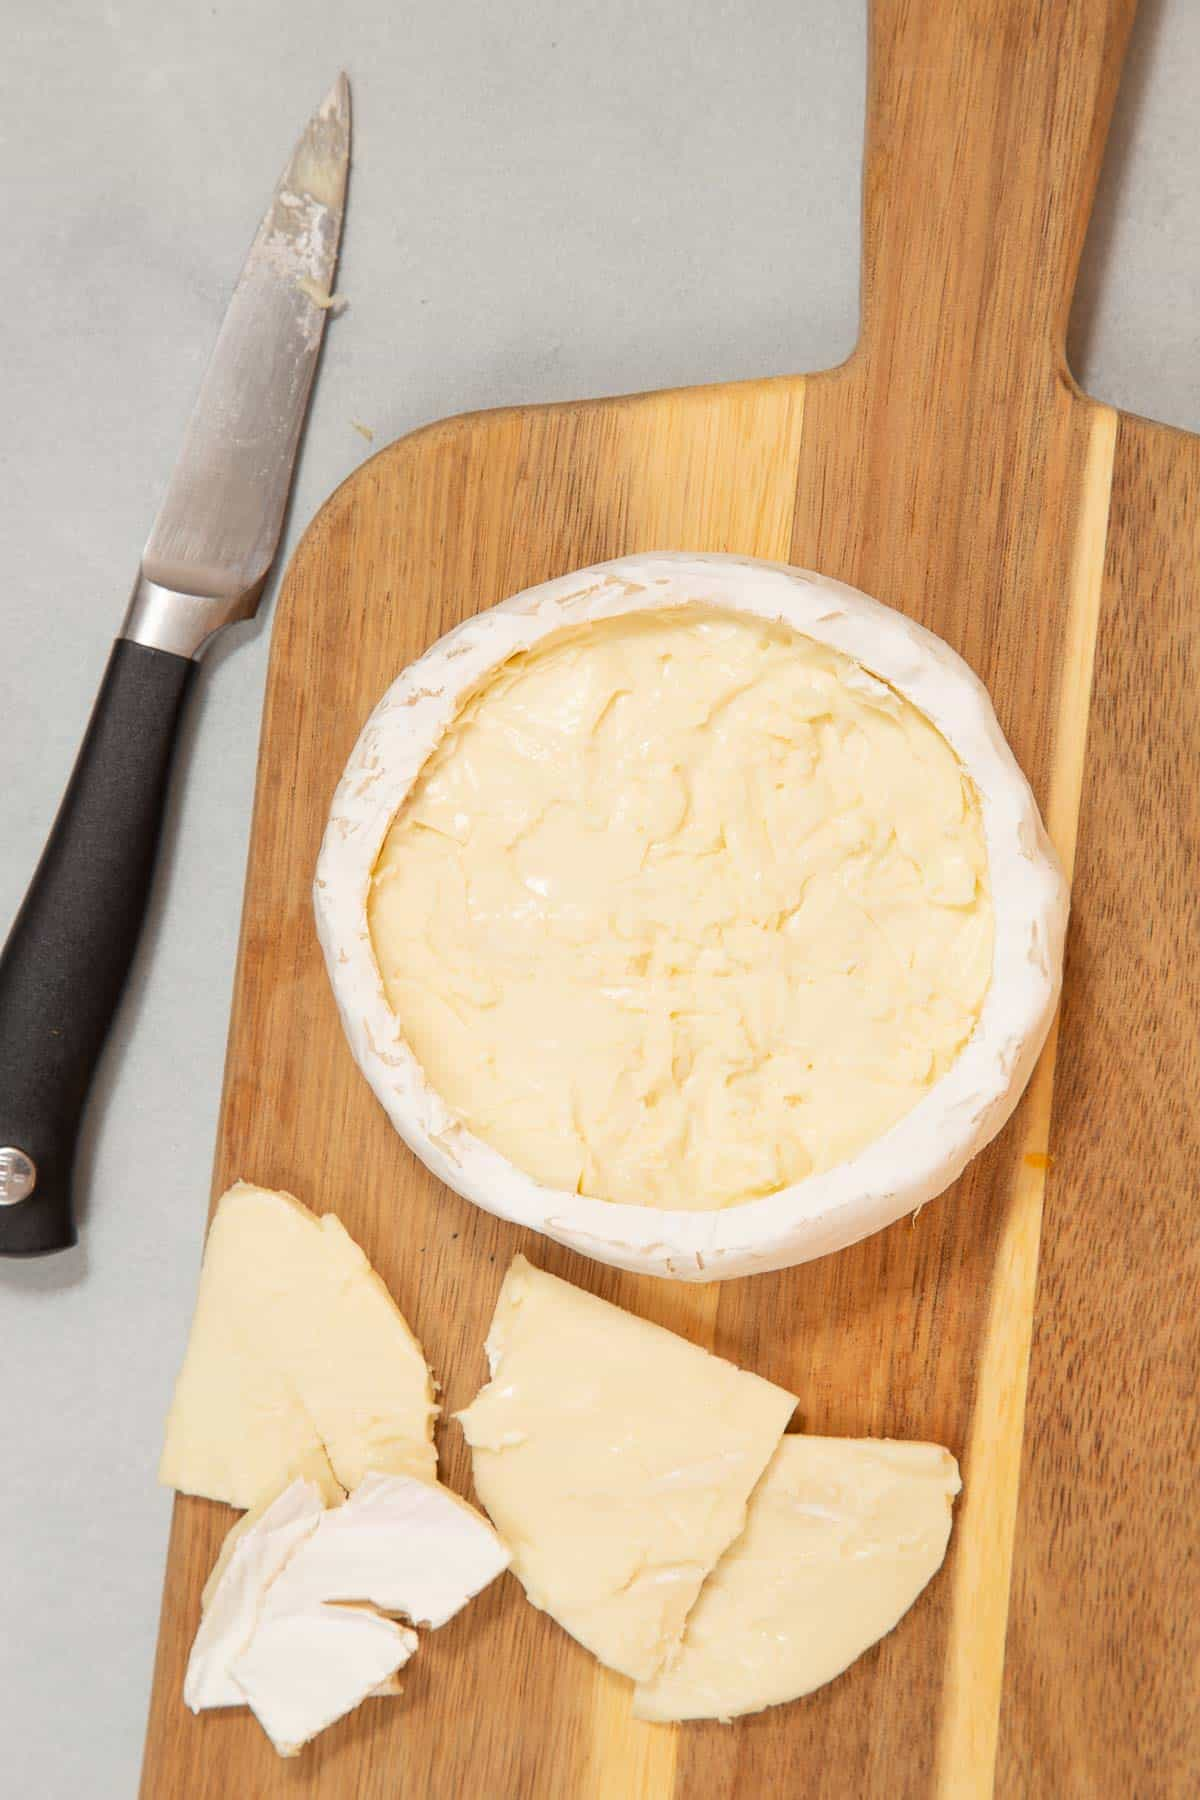 Wheel of brie on a wood board and a knife on the side